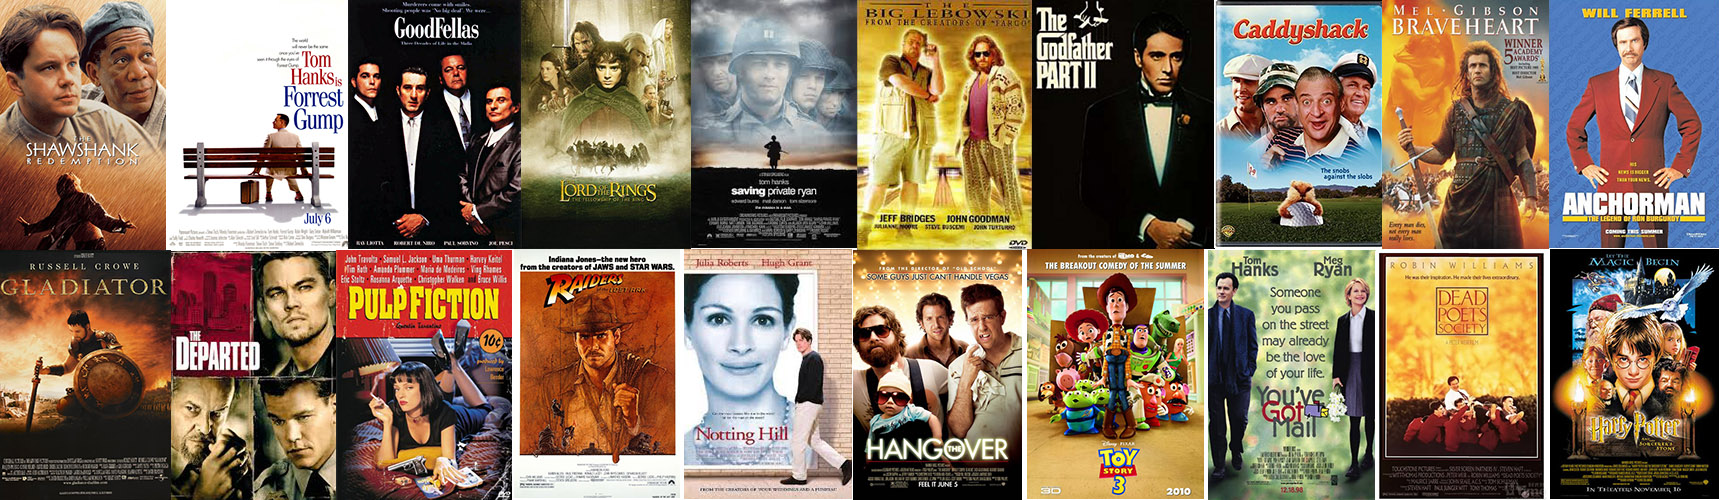 Top 20 Movies Collage